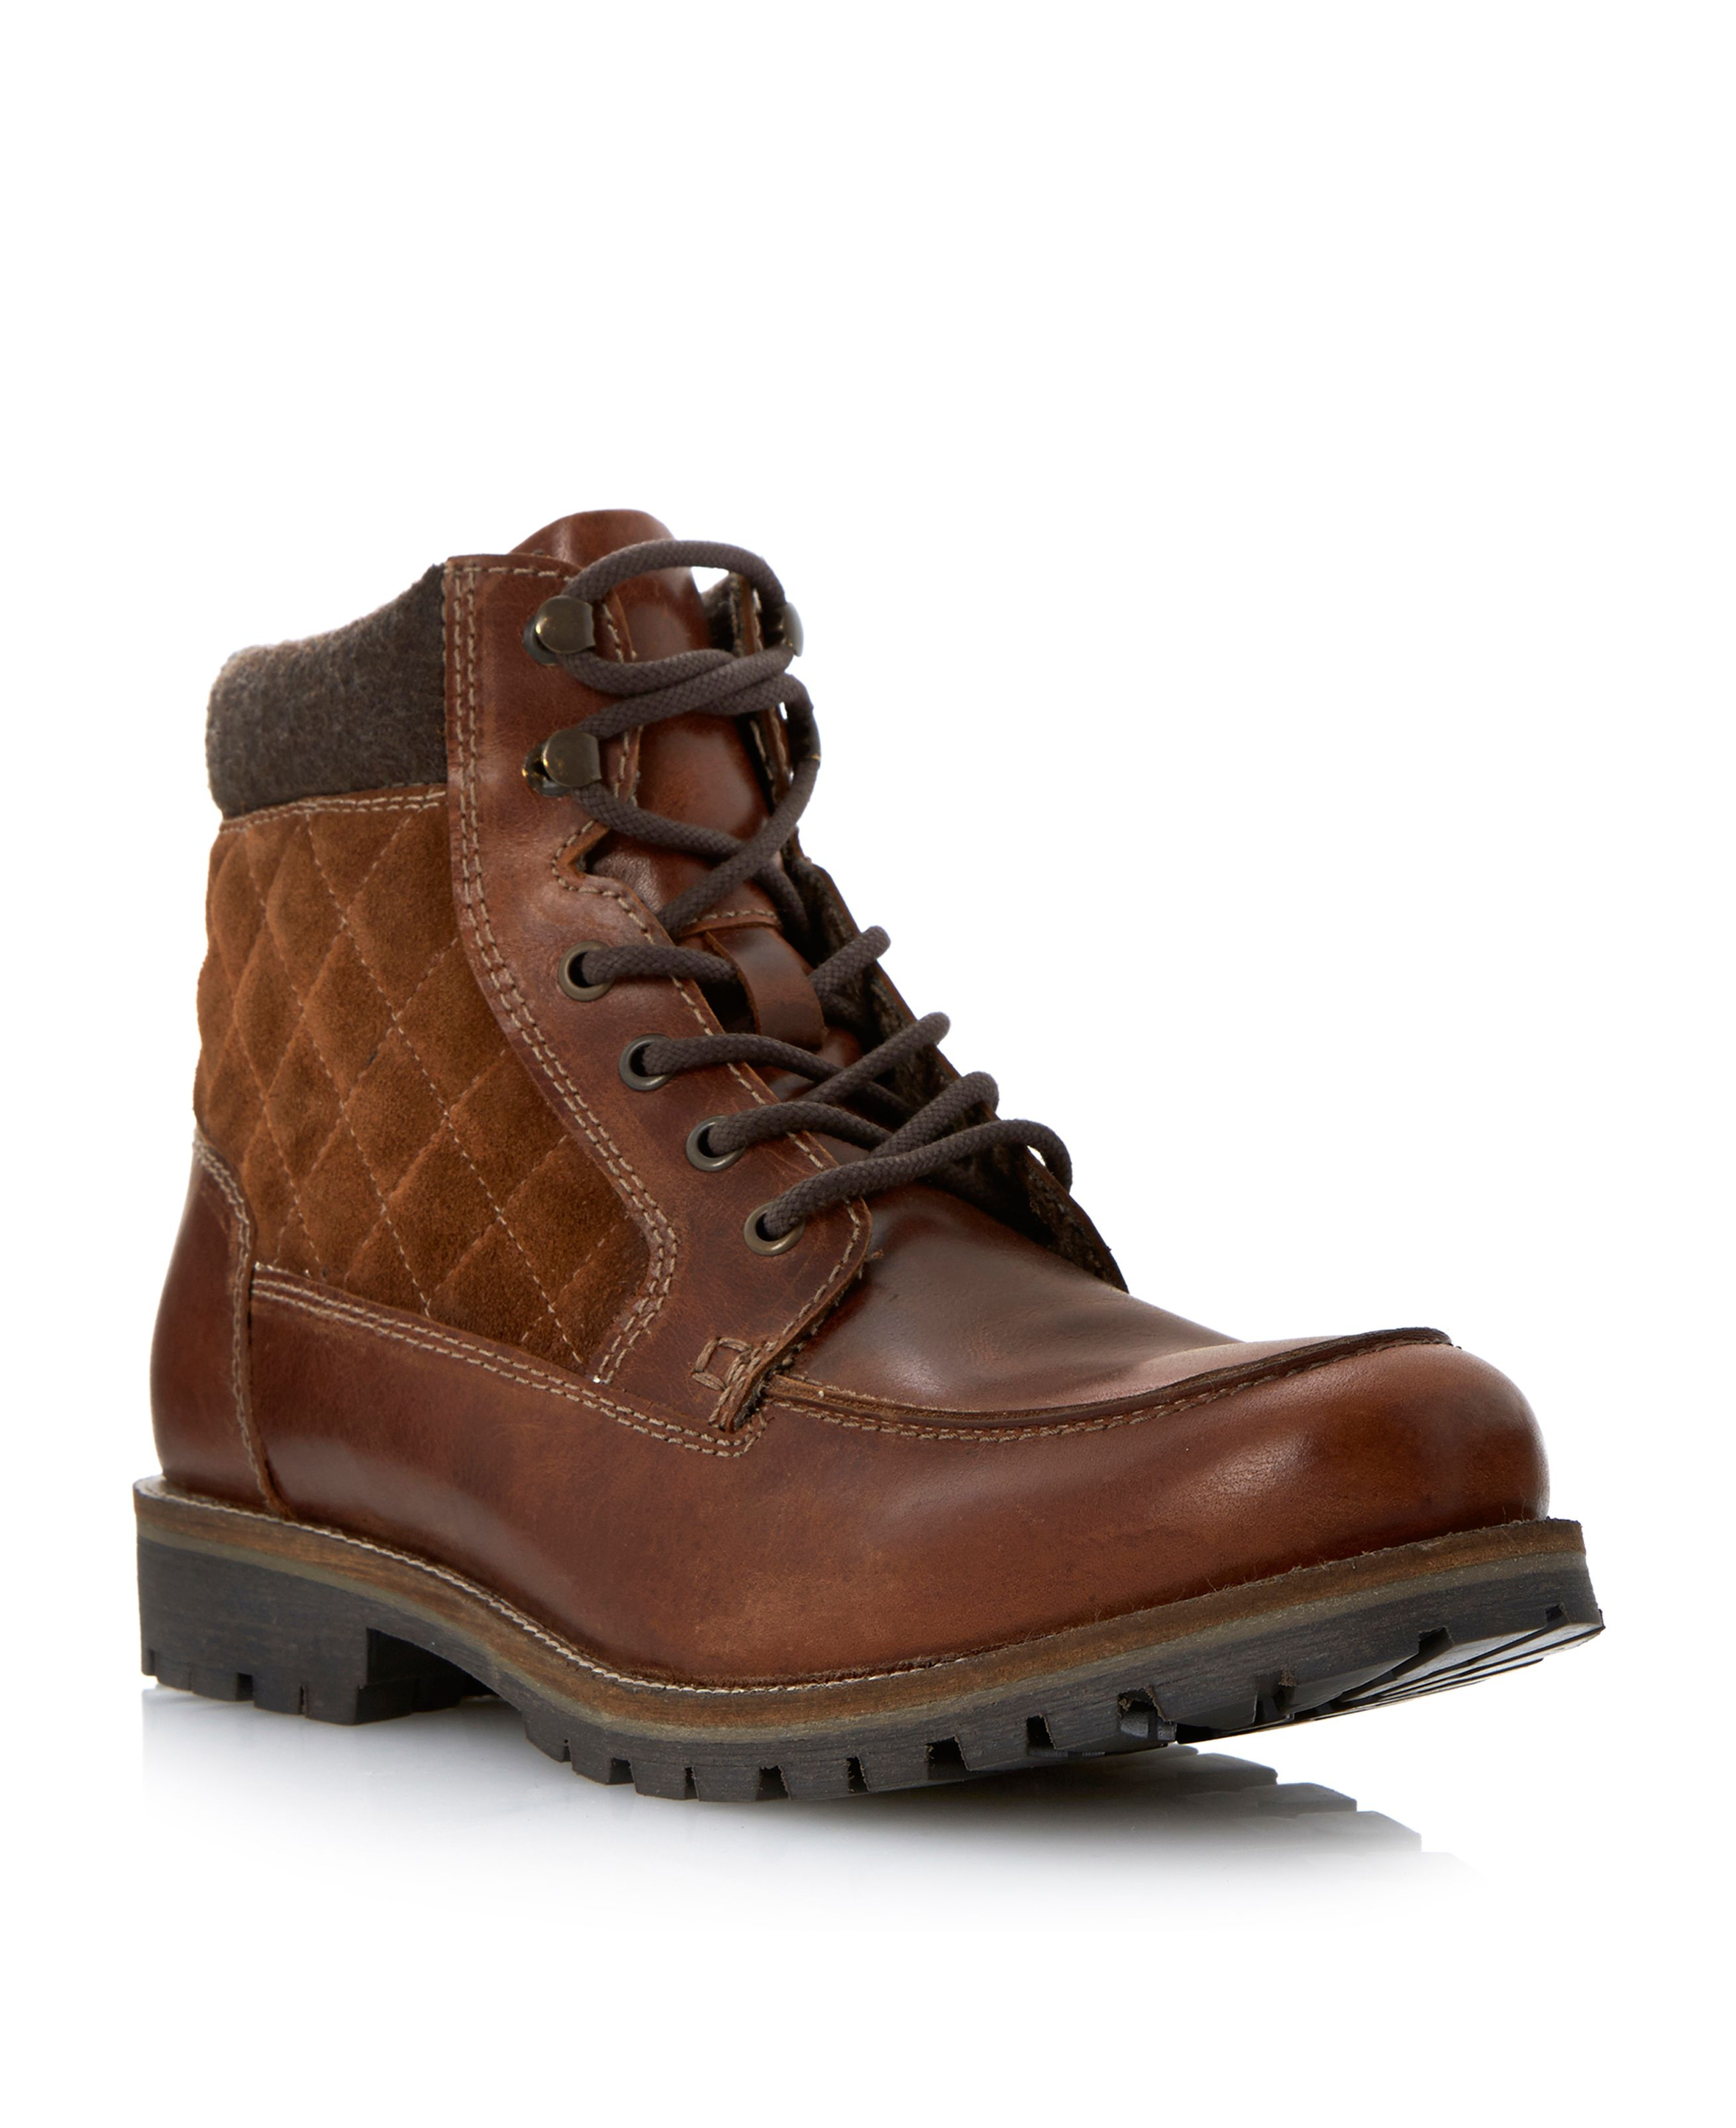 e2f0581bc86 Howick Chuck apron quilted lace up boots Tan   Shoes @ DF